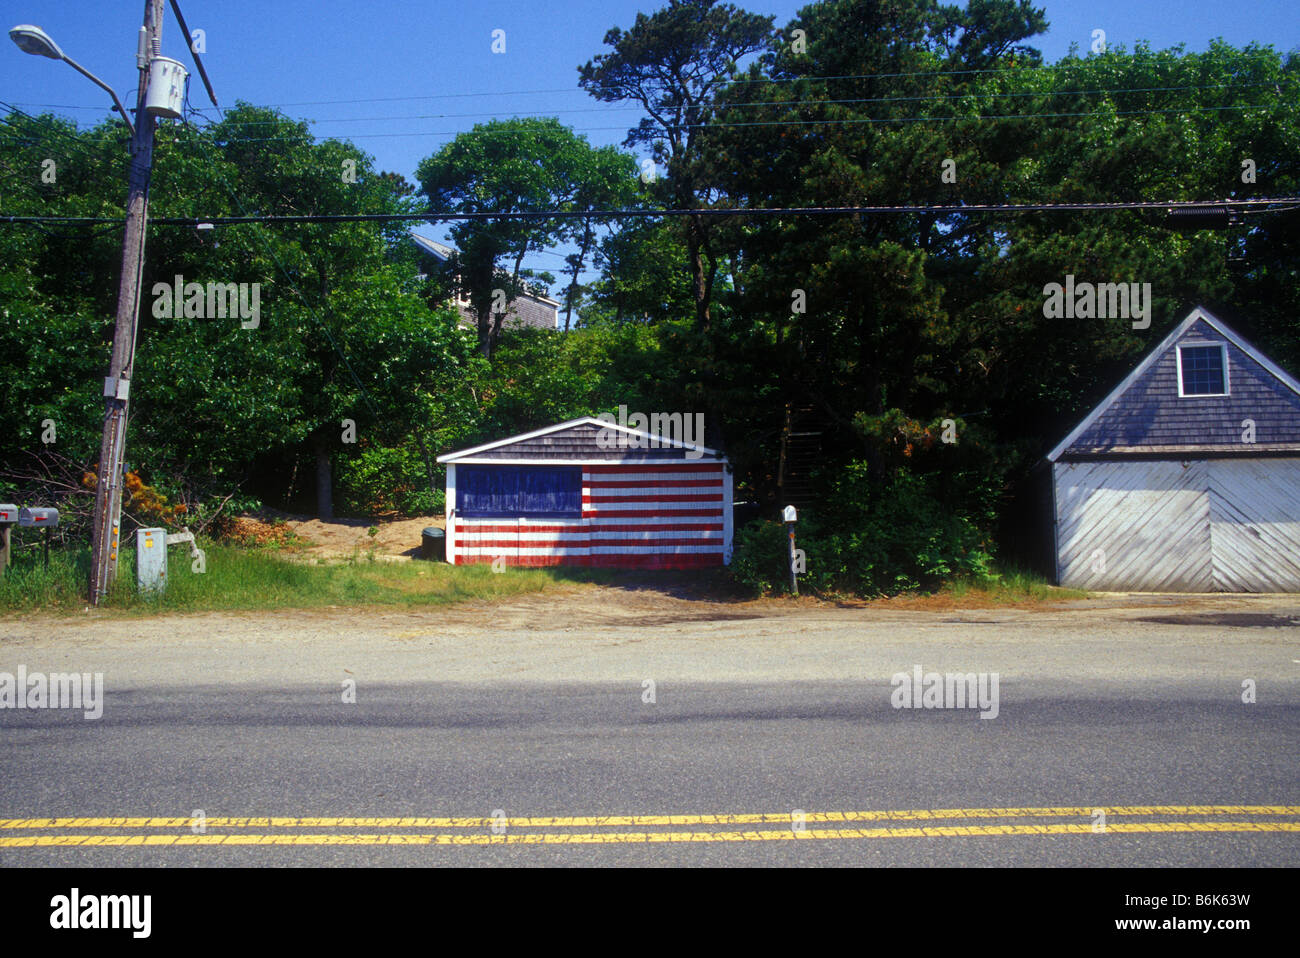 Garage door painted with an American Flag design Cape Cod